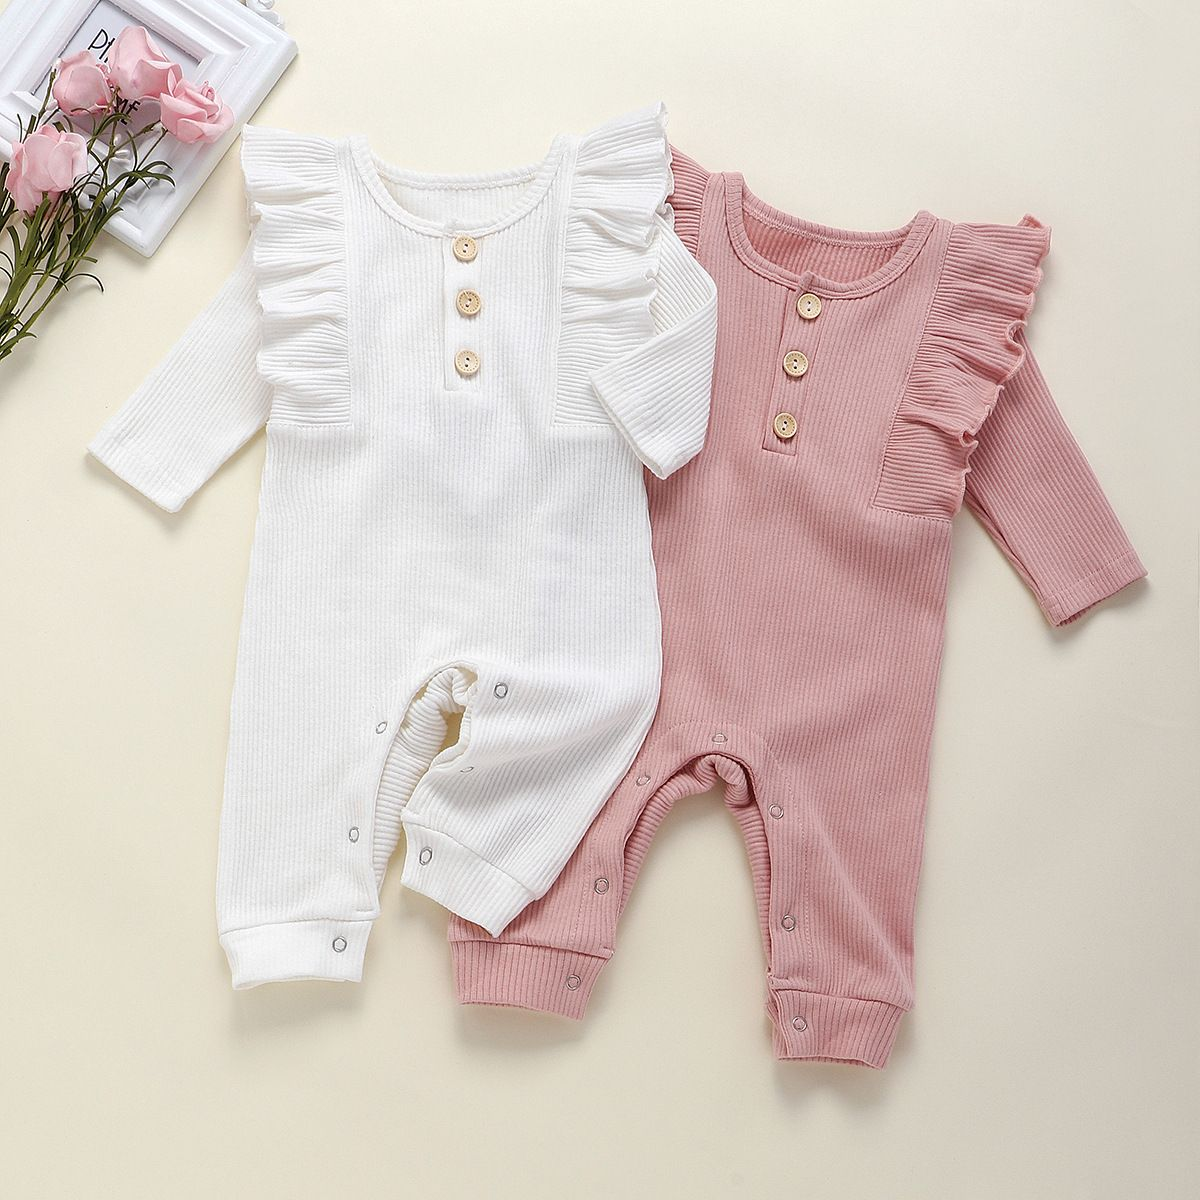 Baby Boys Clothing Newborn Baby Boys Girls Button Pure Color Romper Jumpsuit Outfits Set